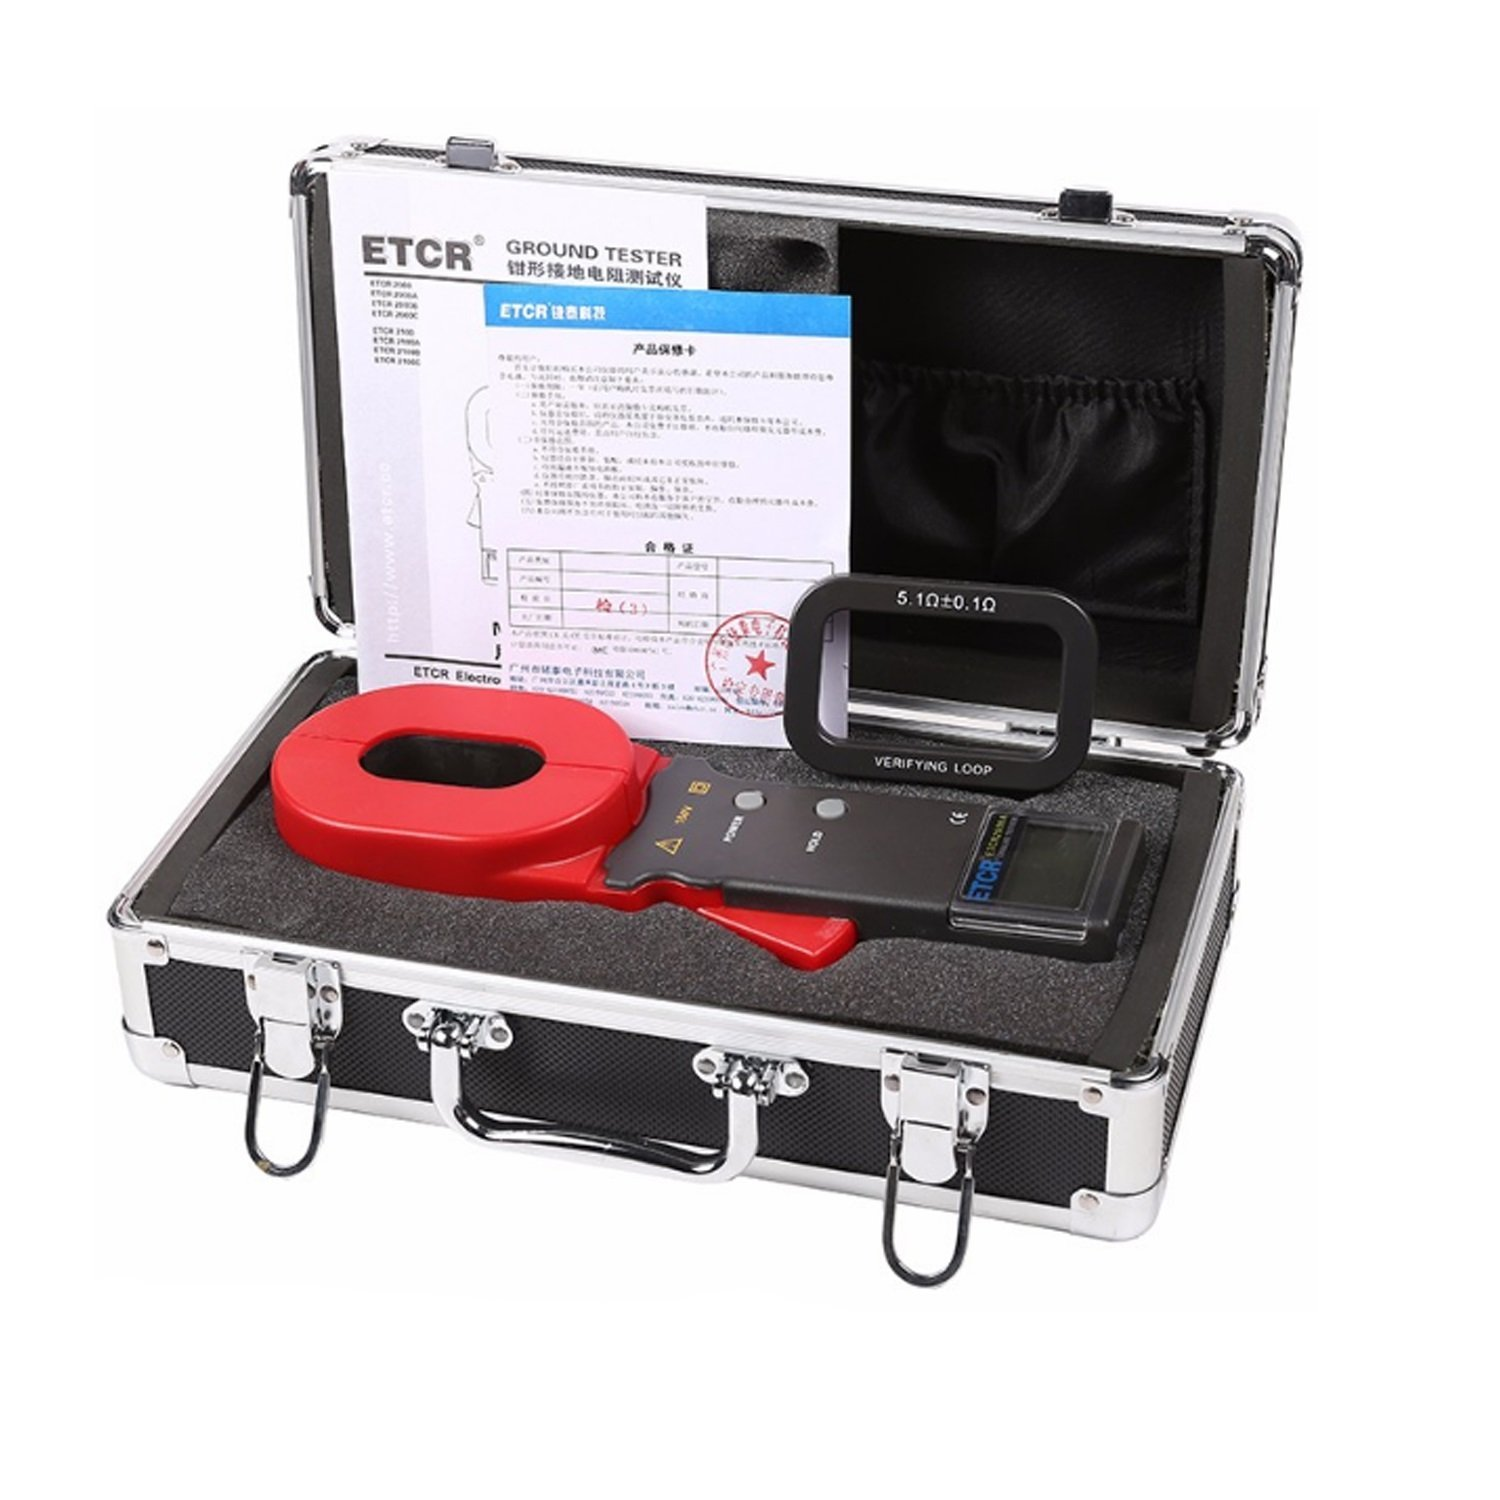 Nuokix Clamp Earth Resistance Tester 0.01-200ohm Digital Ground Resistance Tester ETCR2000A+